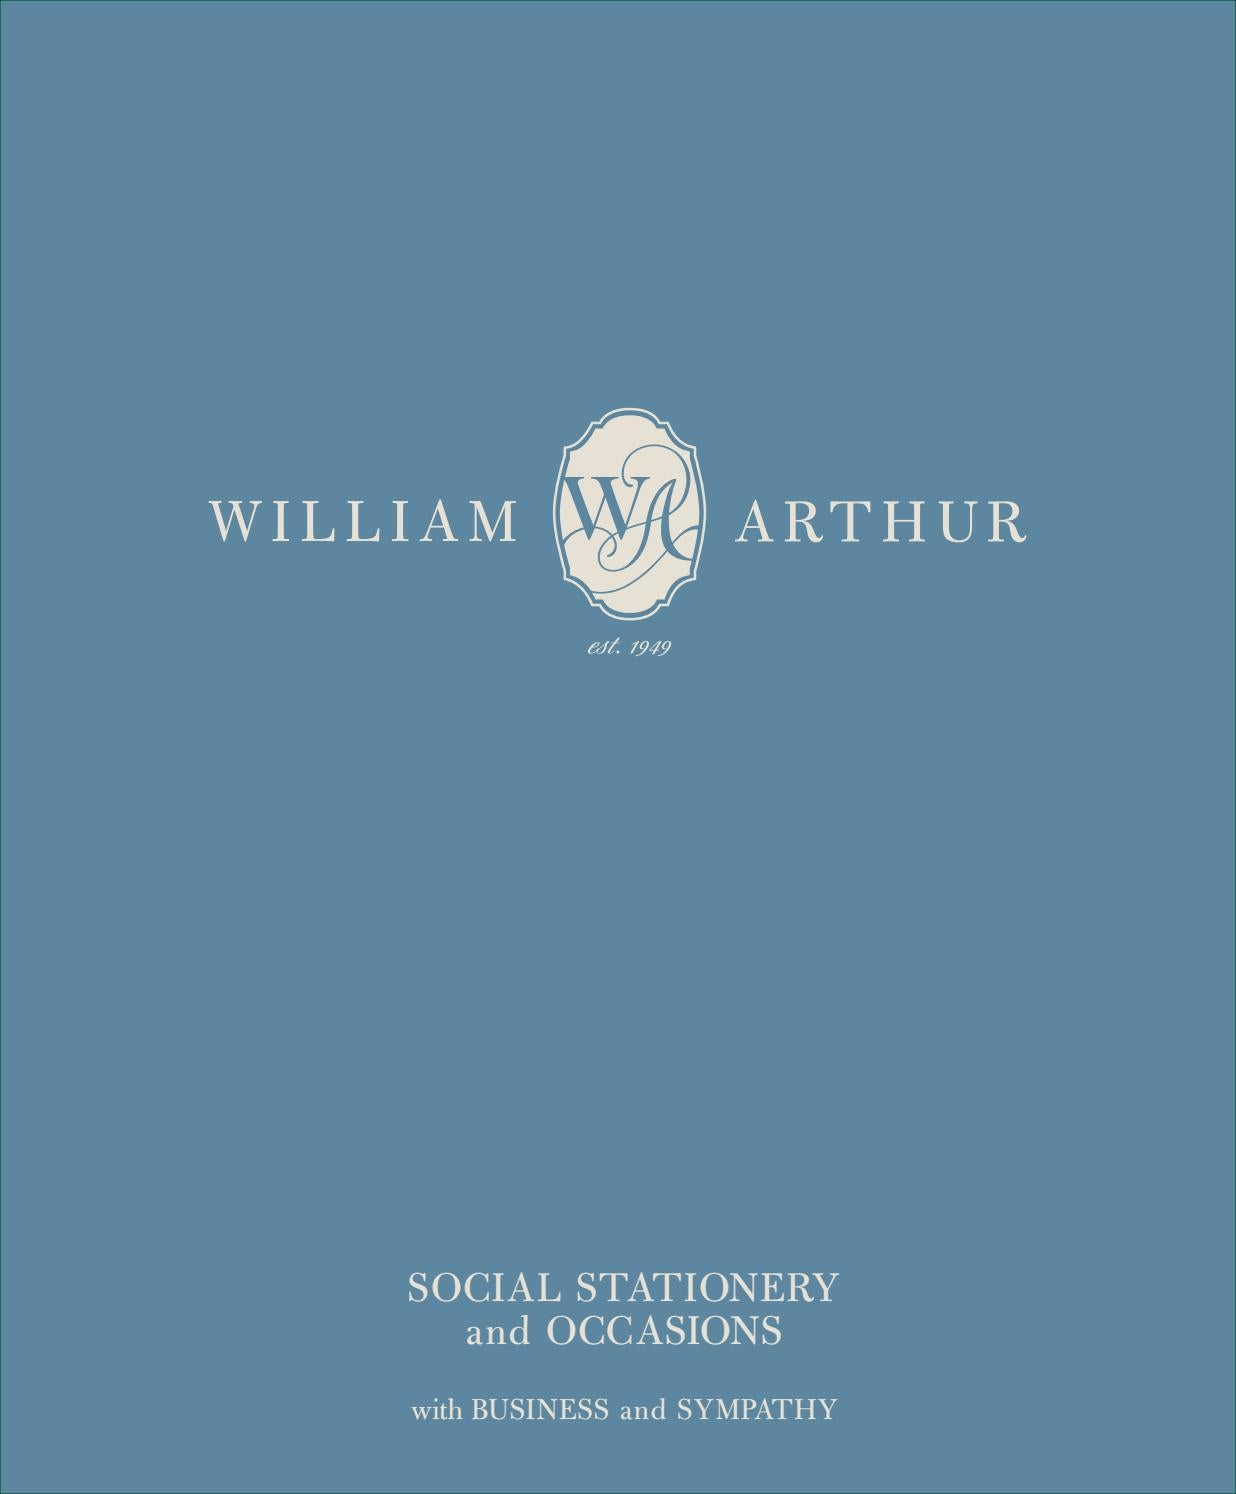 William Arthur Social Stationery William Arthur Weddings